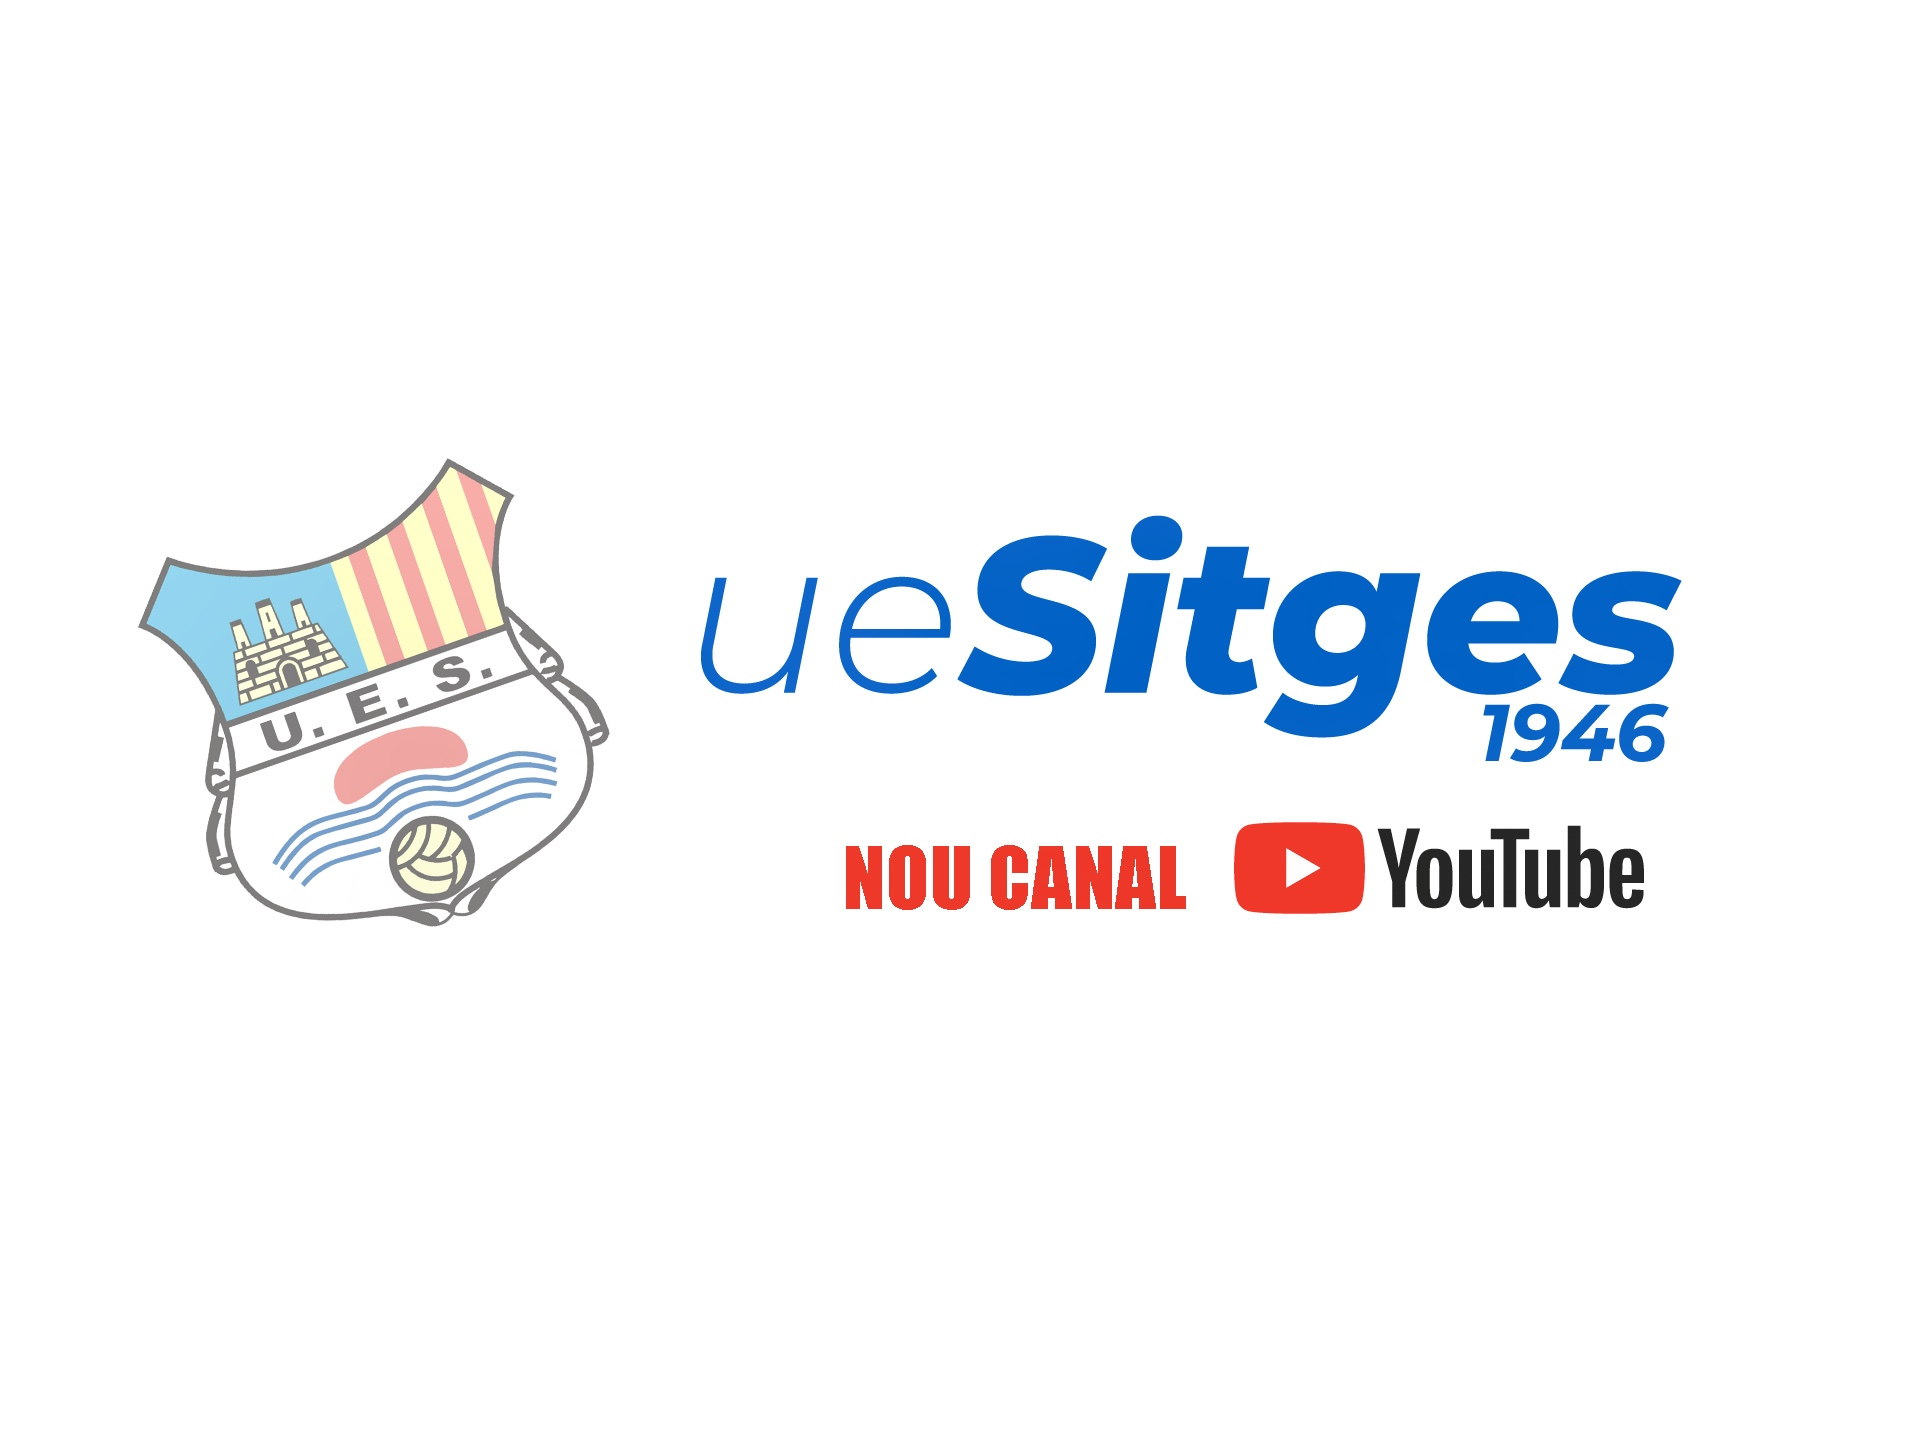 NOU CANAL YOUTUBE